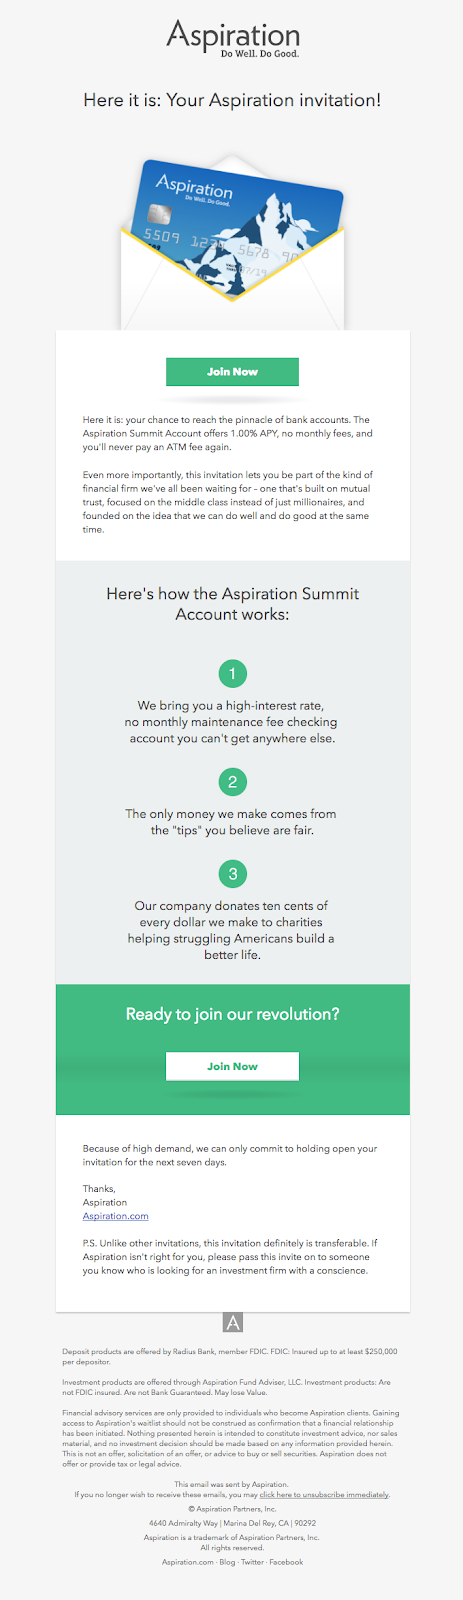 Aspiration product update announcement email campaign example